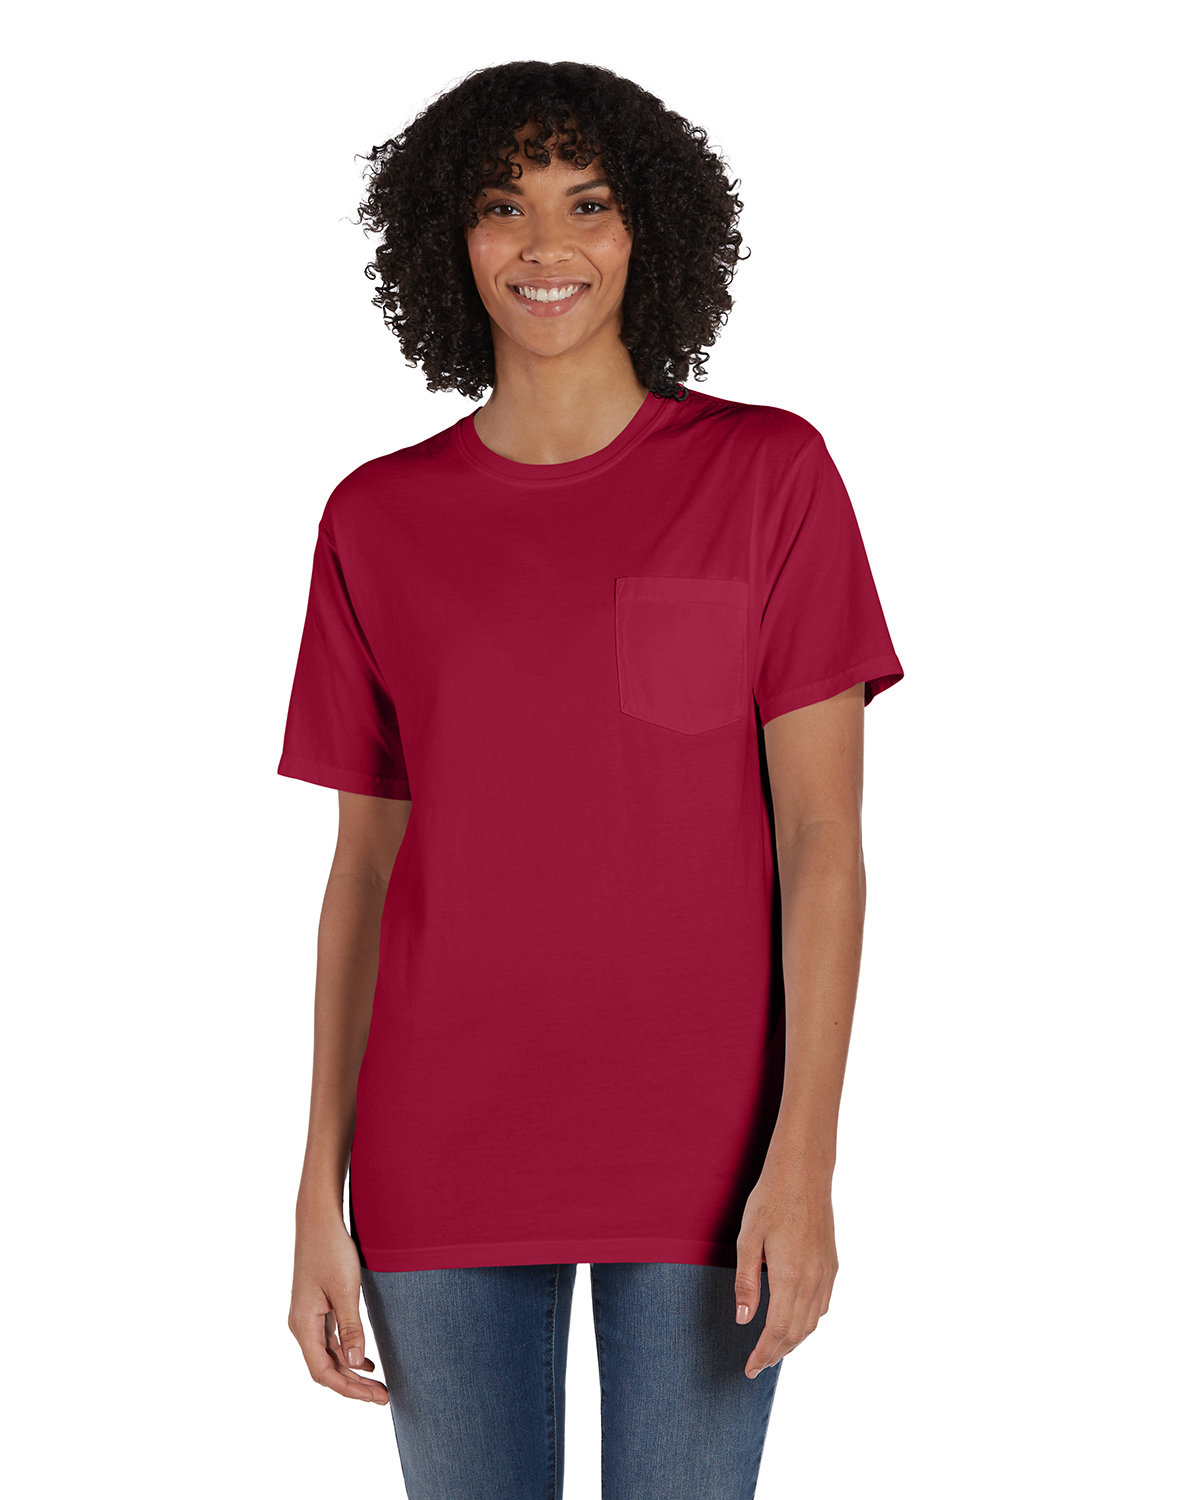 ComfortWash by Hanes Unisex Garment-Dyed T-Shirt with Pocket CRIMSON FALL